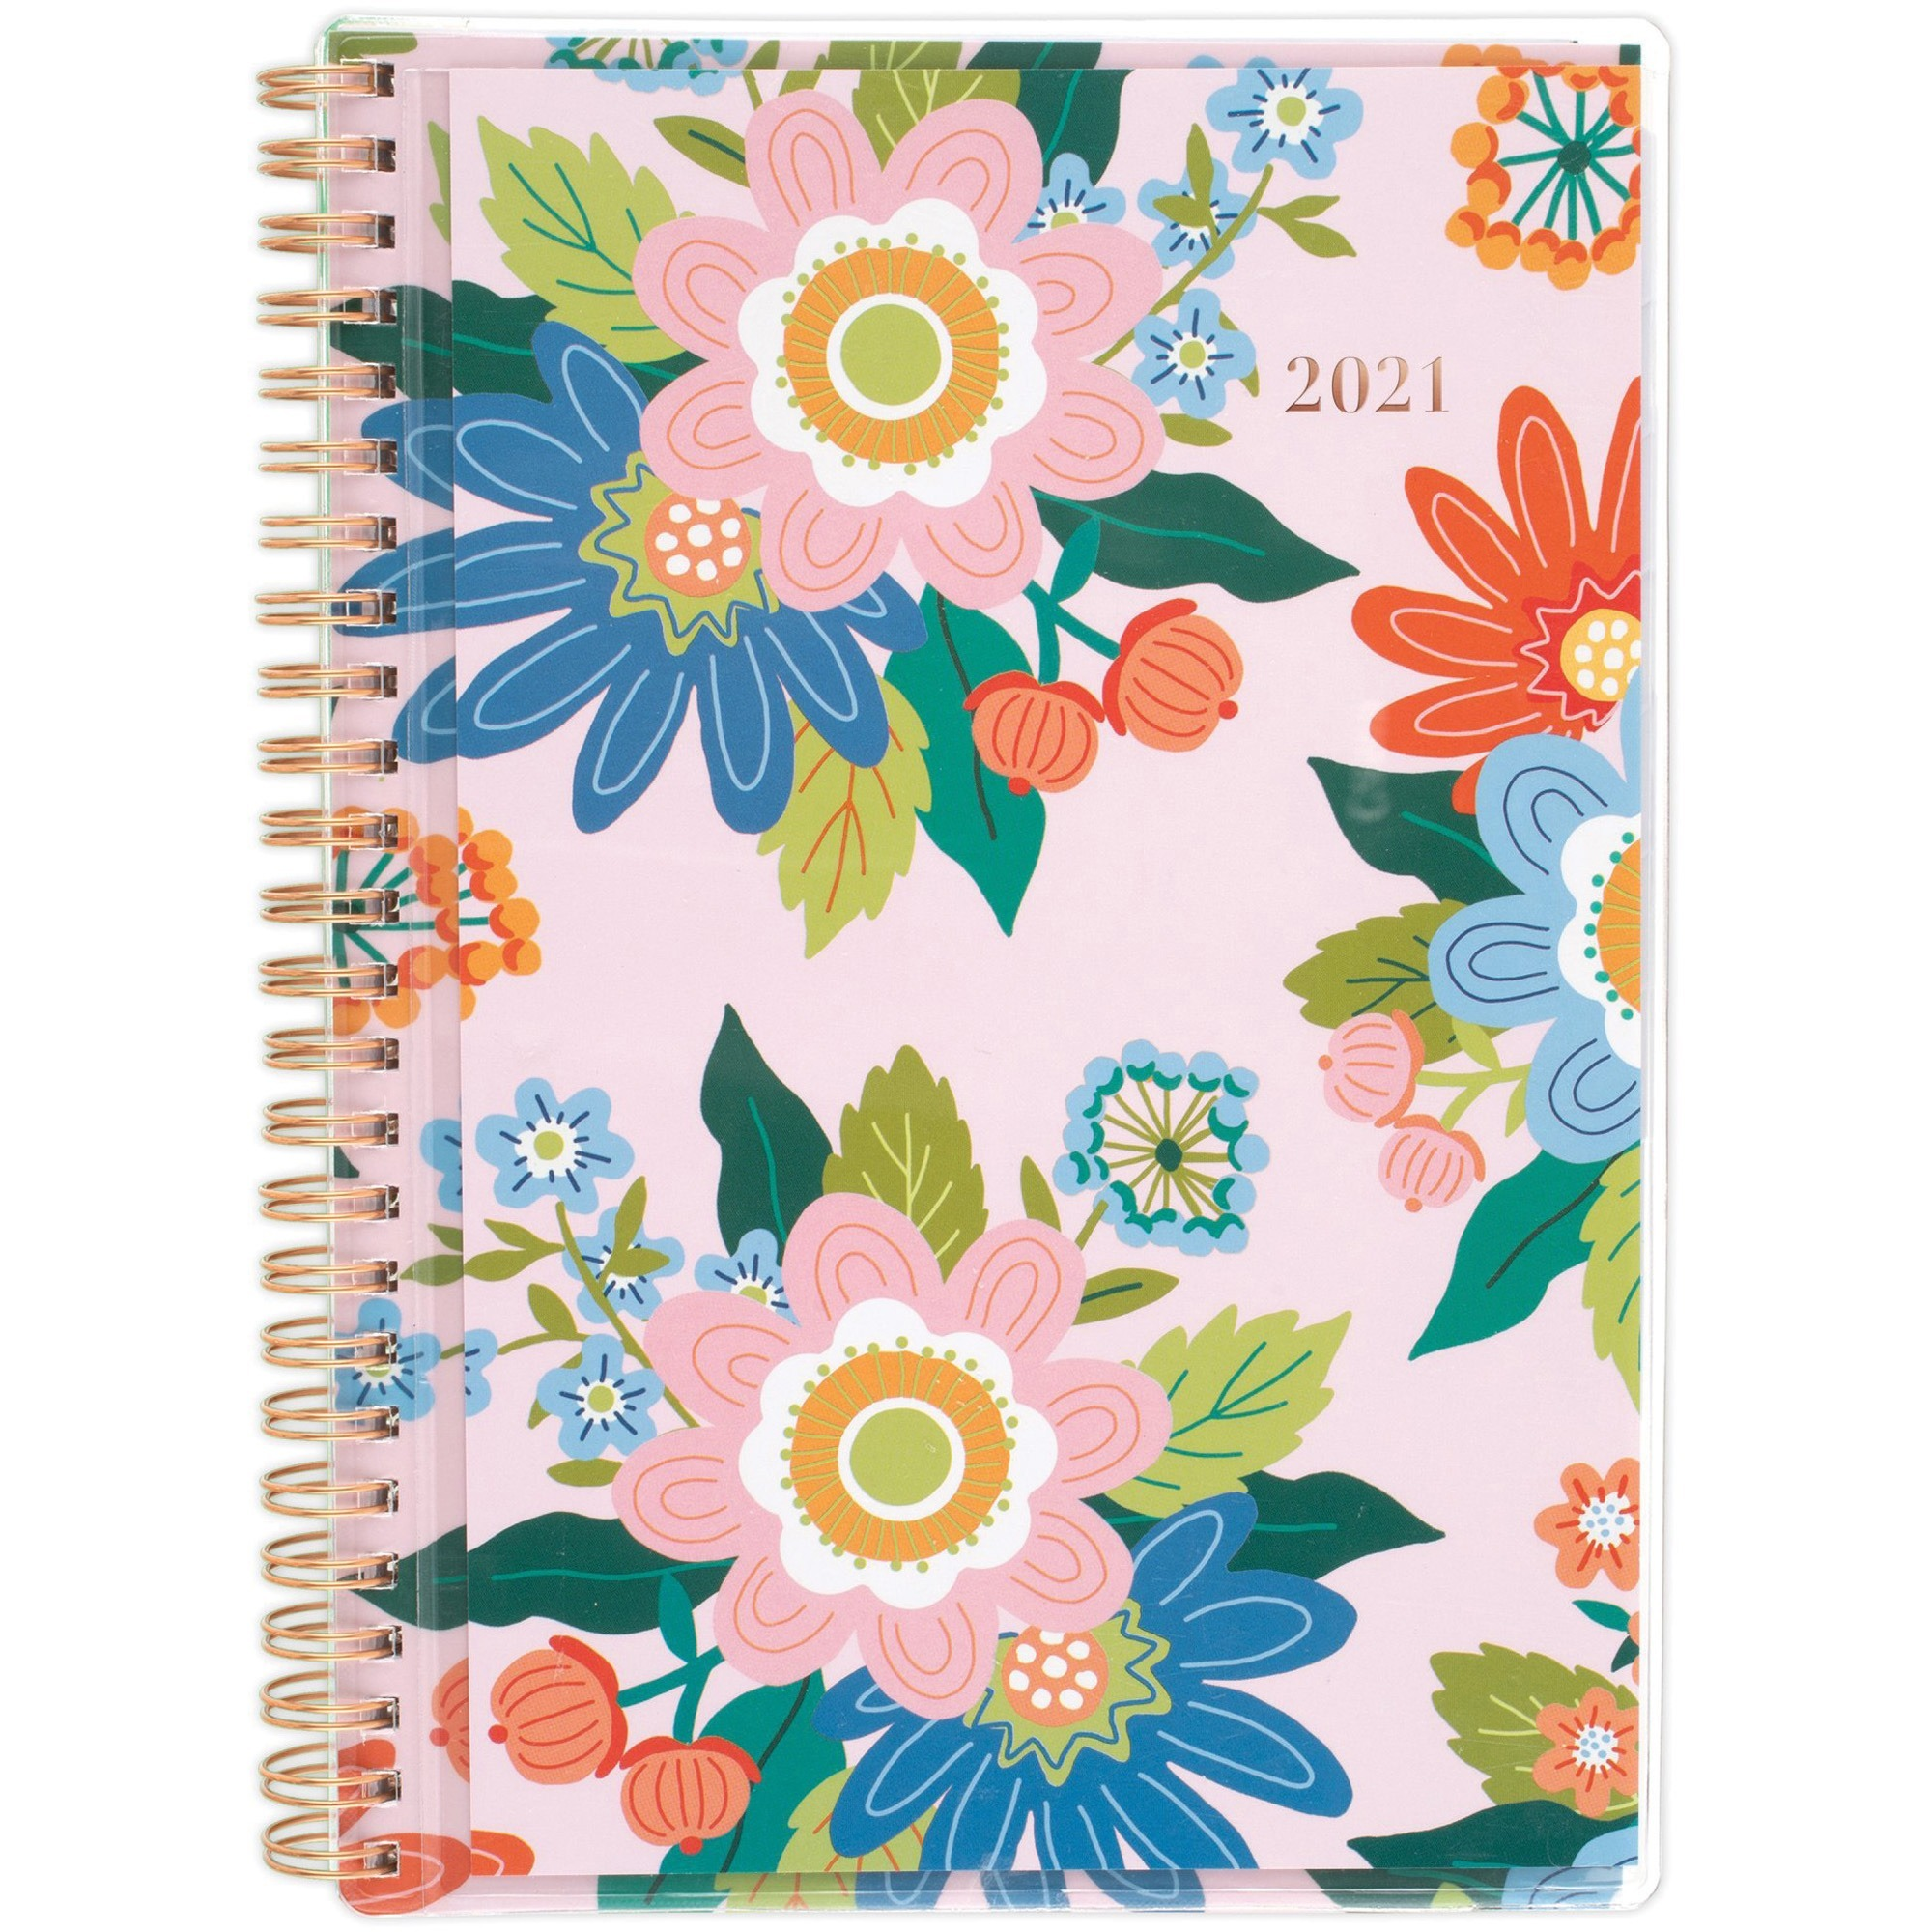 At-A-Glance Juliet Weekly Monthly Planner - Monthly, Weekly - 1 Year - January till December - 1 Week, 1 Month Double Page Layout - Twin Wire - Pink, Clear, Gold, Orange, Blue, Green - Vinyl, Poly - Reminder Section, Tabbed, Notes Area, Contact Sheet, Dur